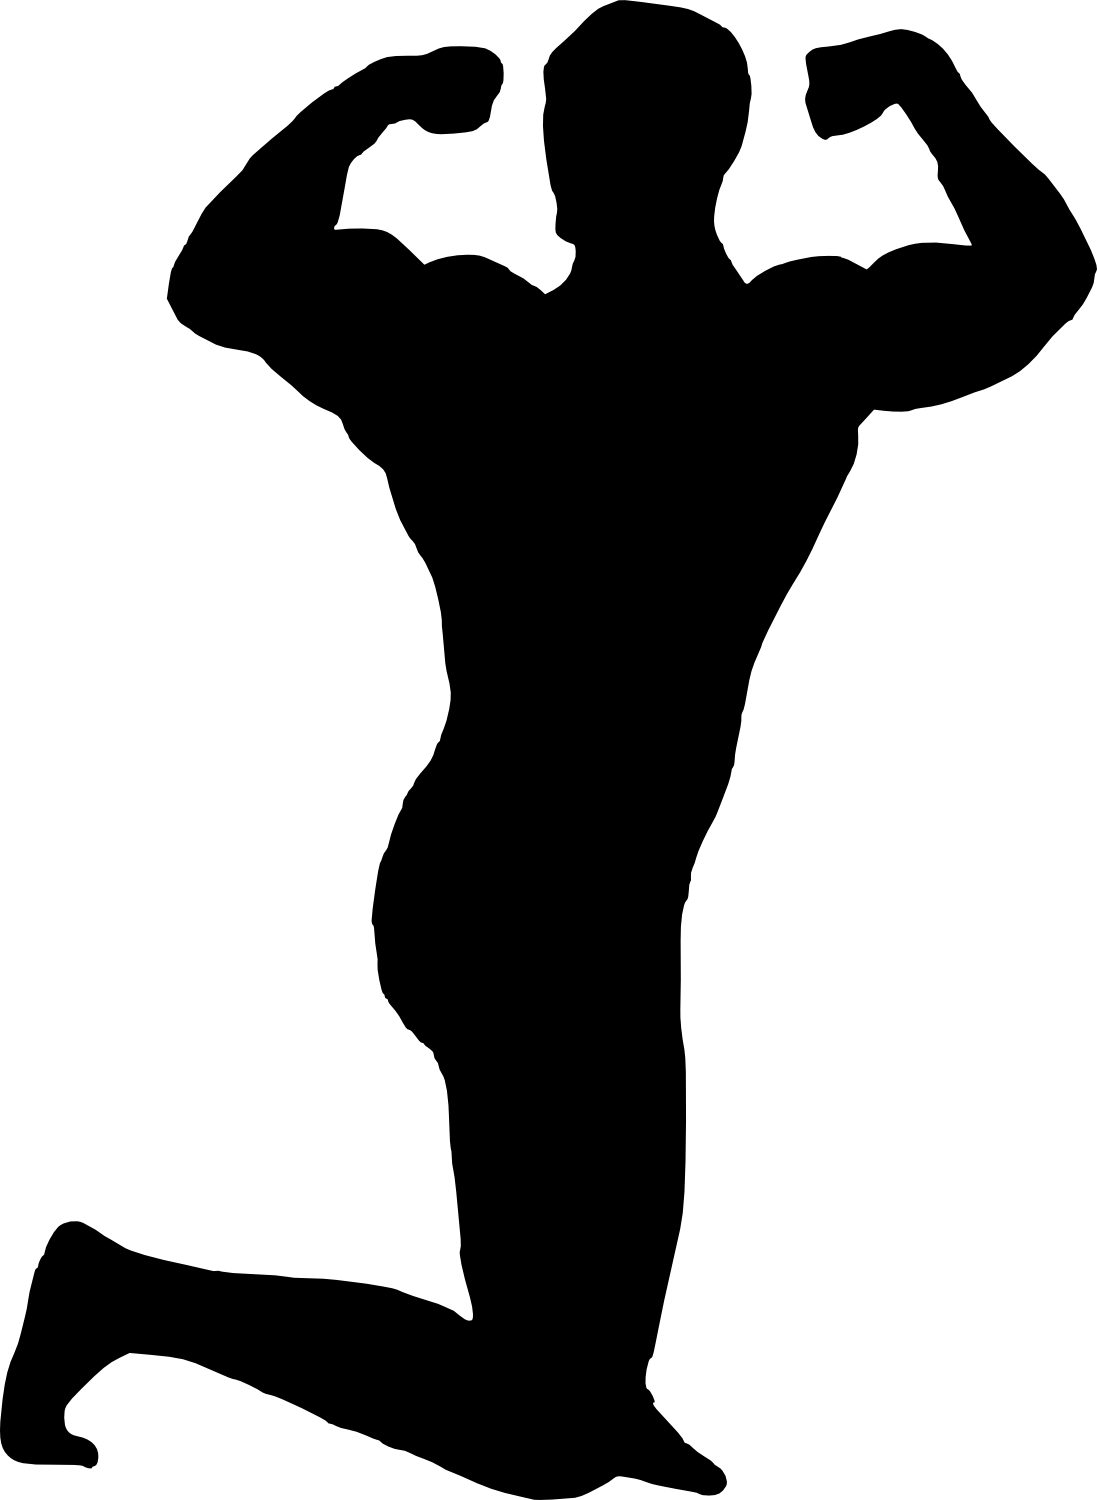 bodybuilder, muscle man body builder silhouette png transparent onlygfxm #29115